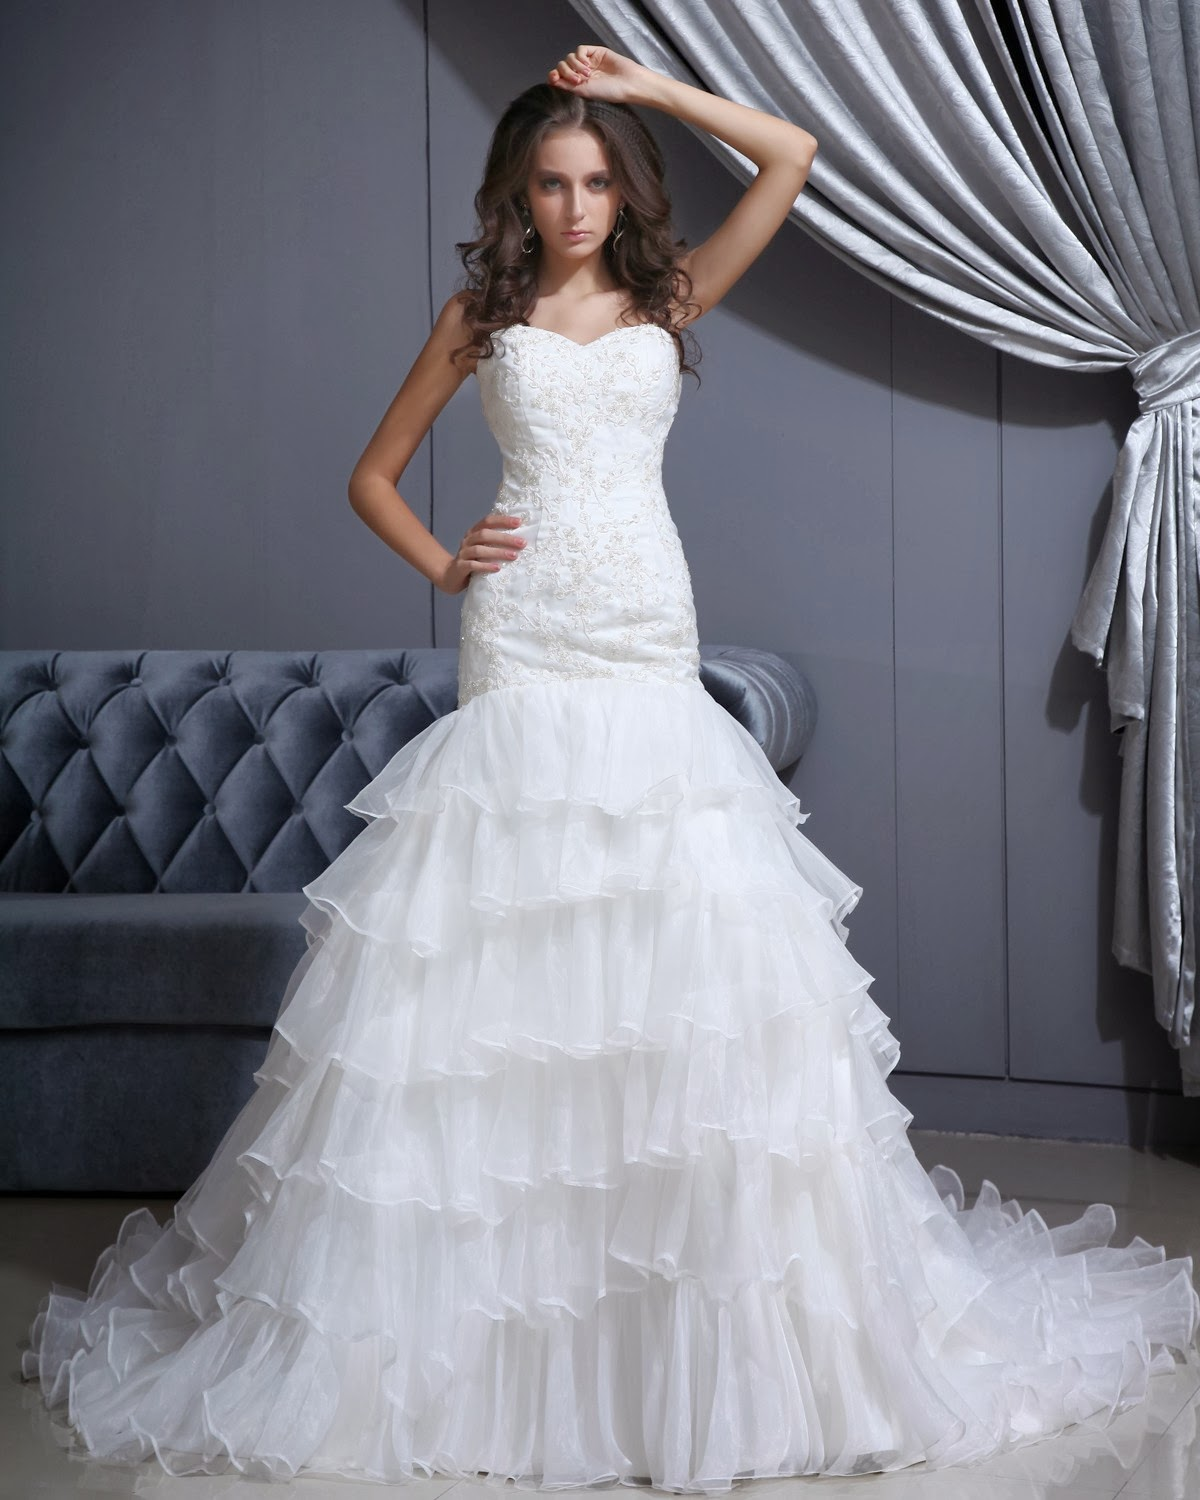 Pictures Of Gowns For Wedding: Wedding Dress: Finding Discount Wedding Gowns Online